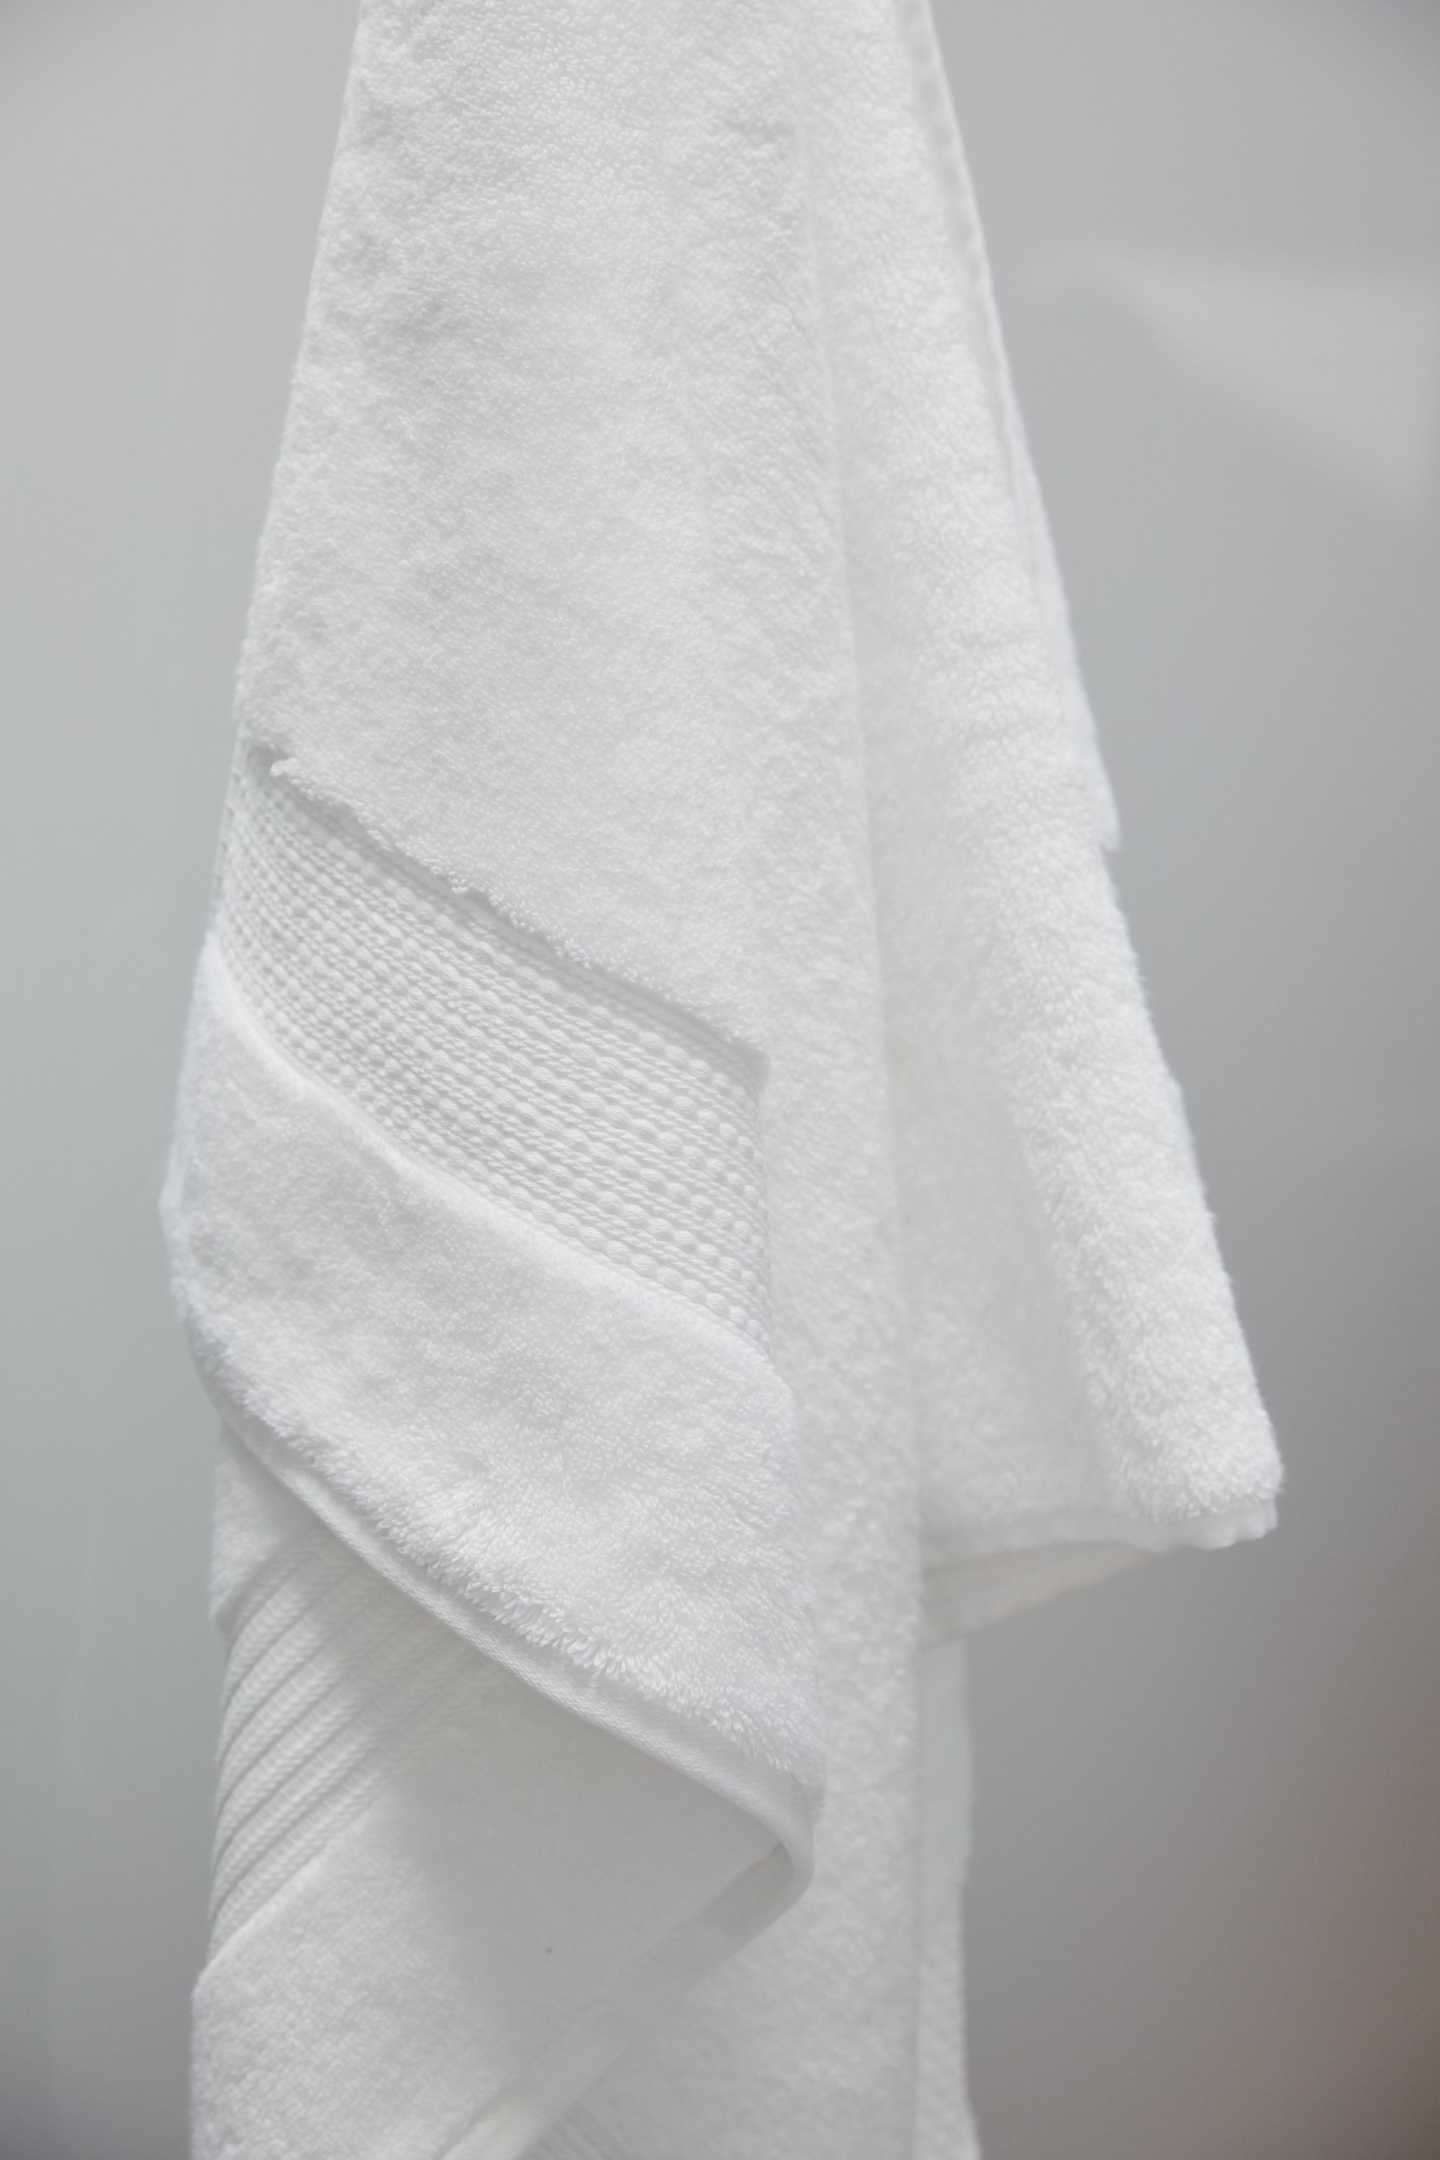 Turkish Quick-Dry Bath Towels (Set of 2) - White - 3 - Thumbnail